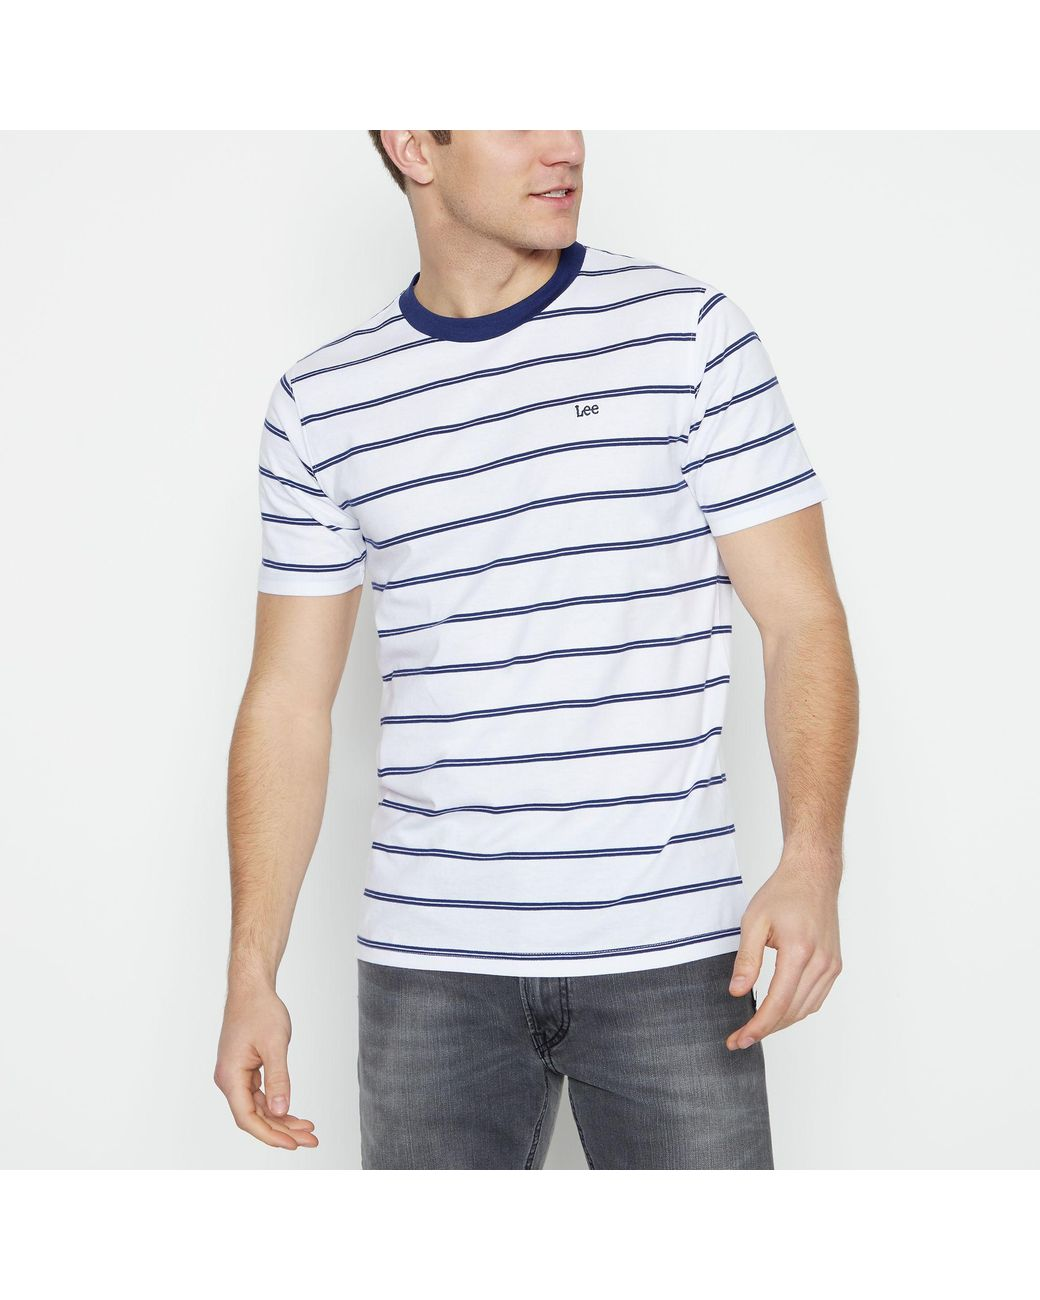 21f92265 Lee Jeans White Striped Cotton T-shirt in White for Men - Lyst